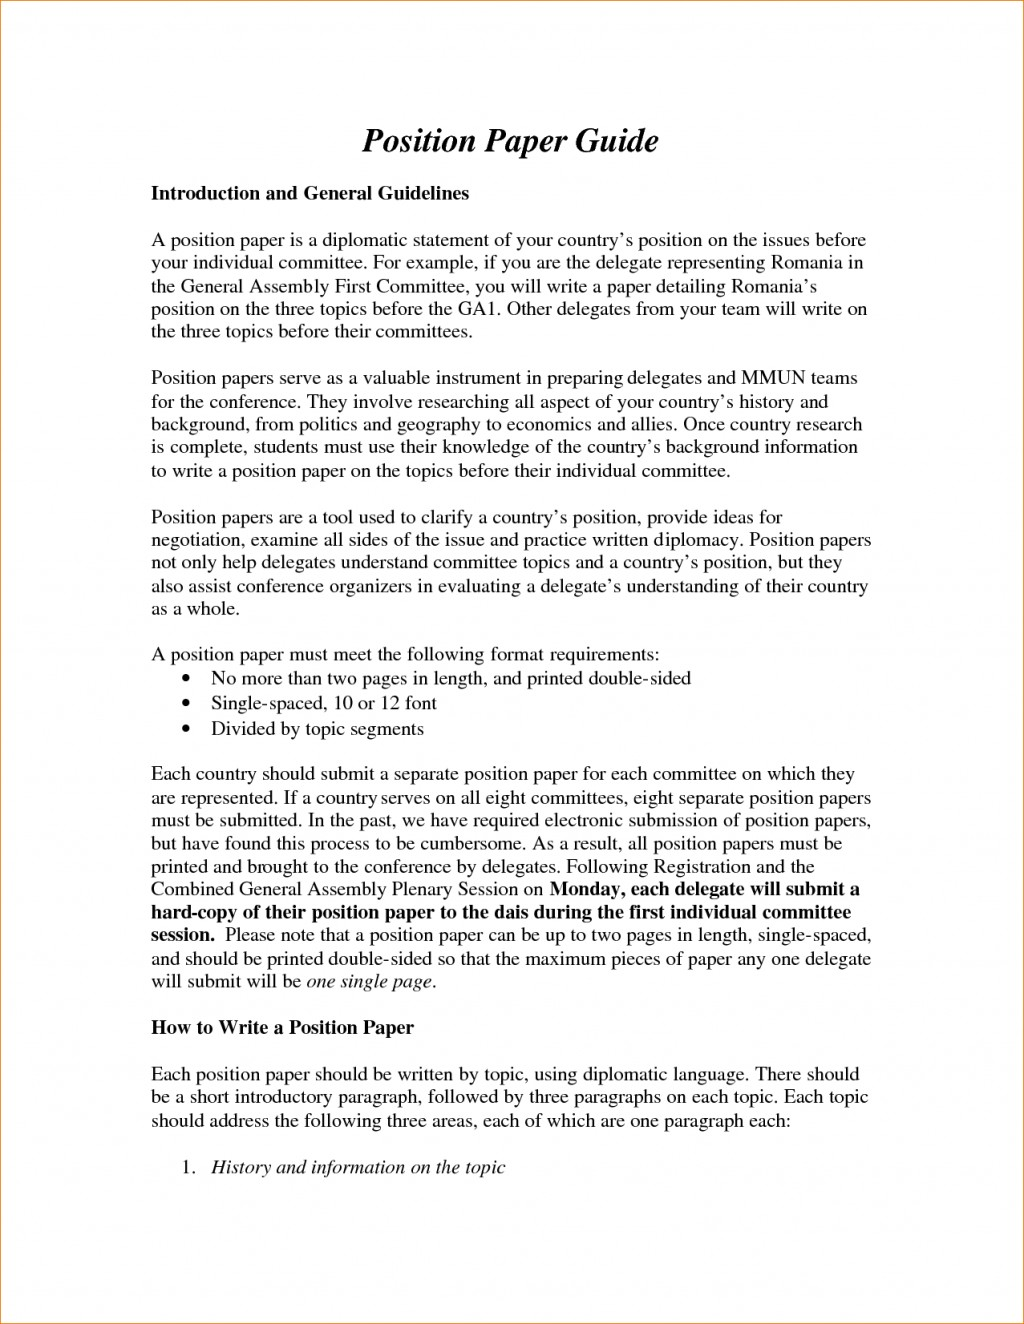 004 Research Paper Proposal Template Striking Example Pdf Topic Format Sample Large